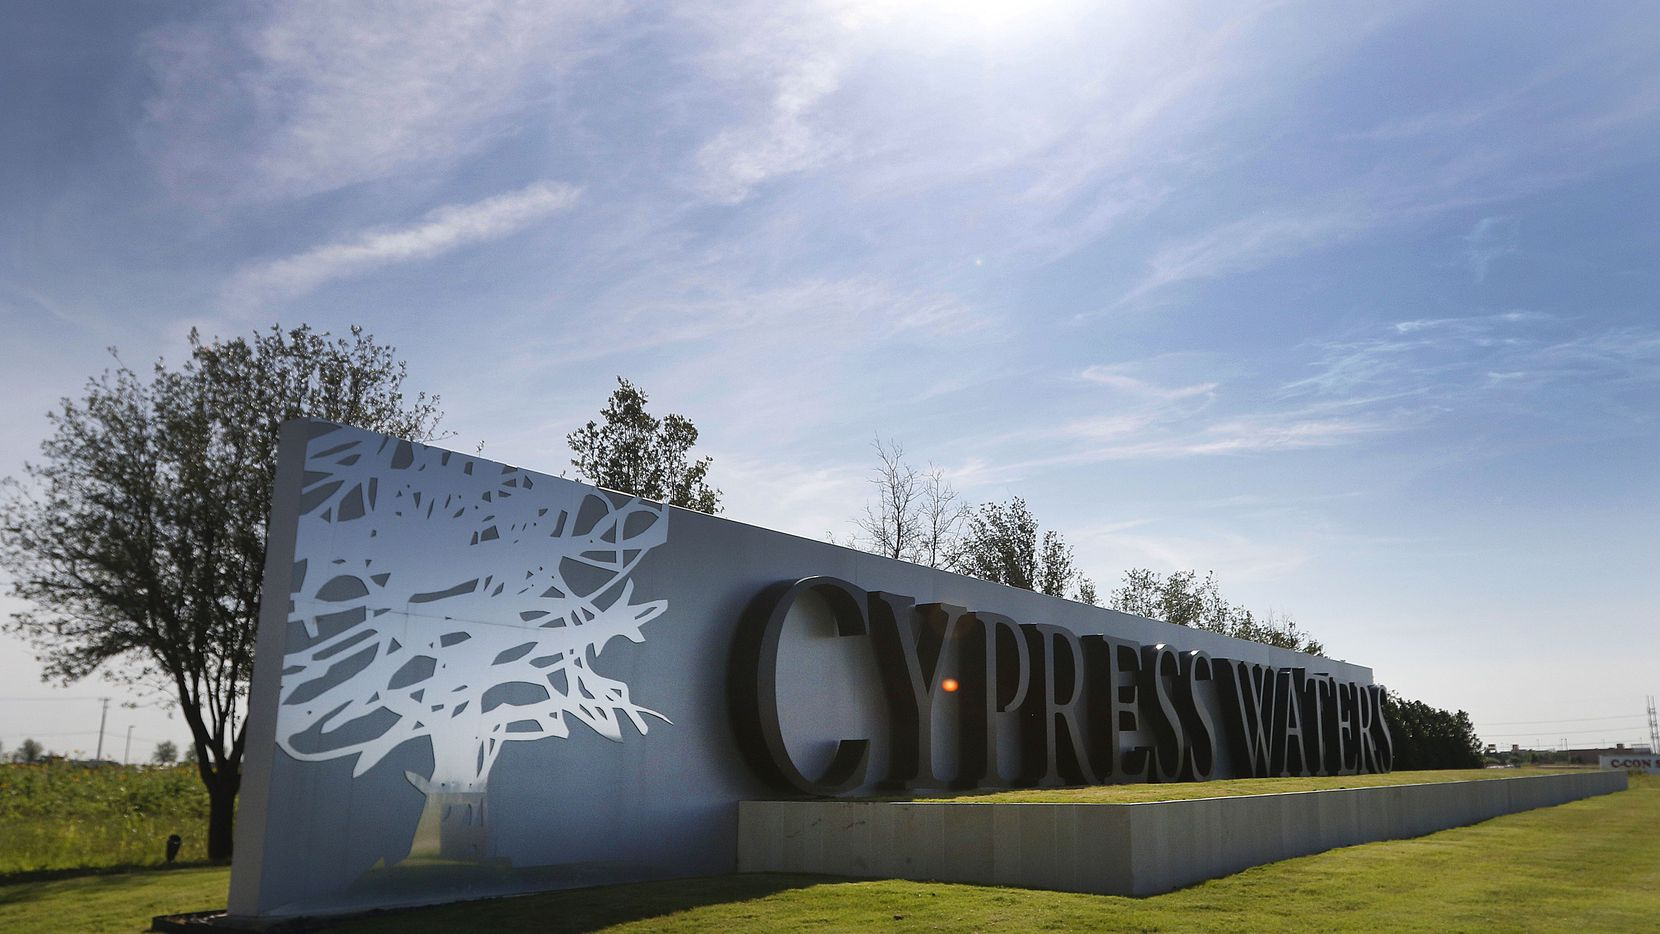 Charlotte, N.C.-based mortgage fintech Wyndham Capital Mortgage chose Cypress Waters for its fifth office in the U.S. It opened its doors about three weeks ago.